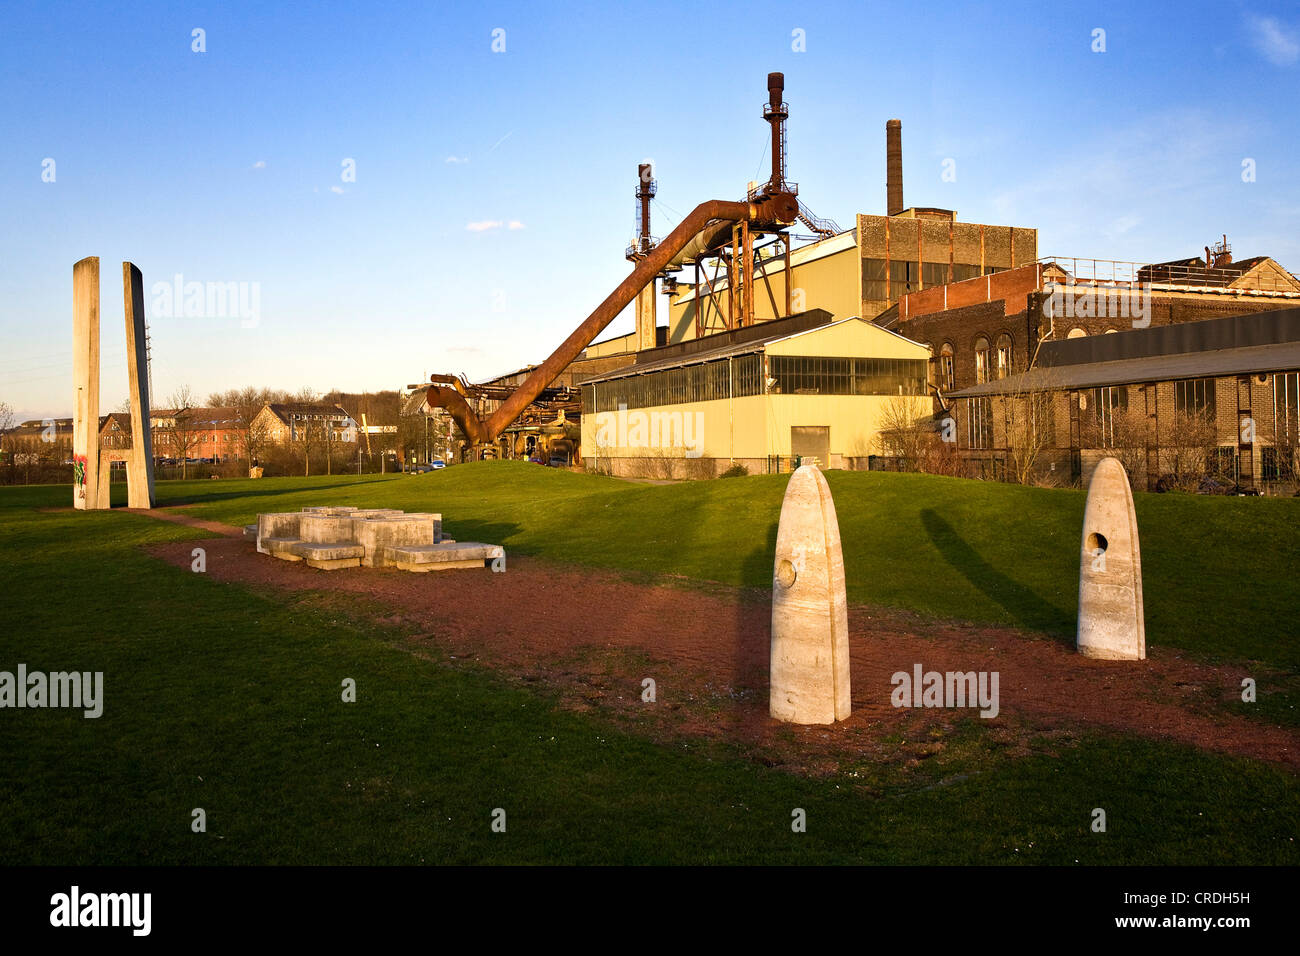 steelwork Henrichshuette with the sculpture garden in the foreground, Germany, North Rhine-Westphalia, Ruhr Area, - Stock Image